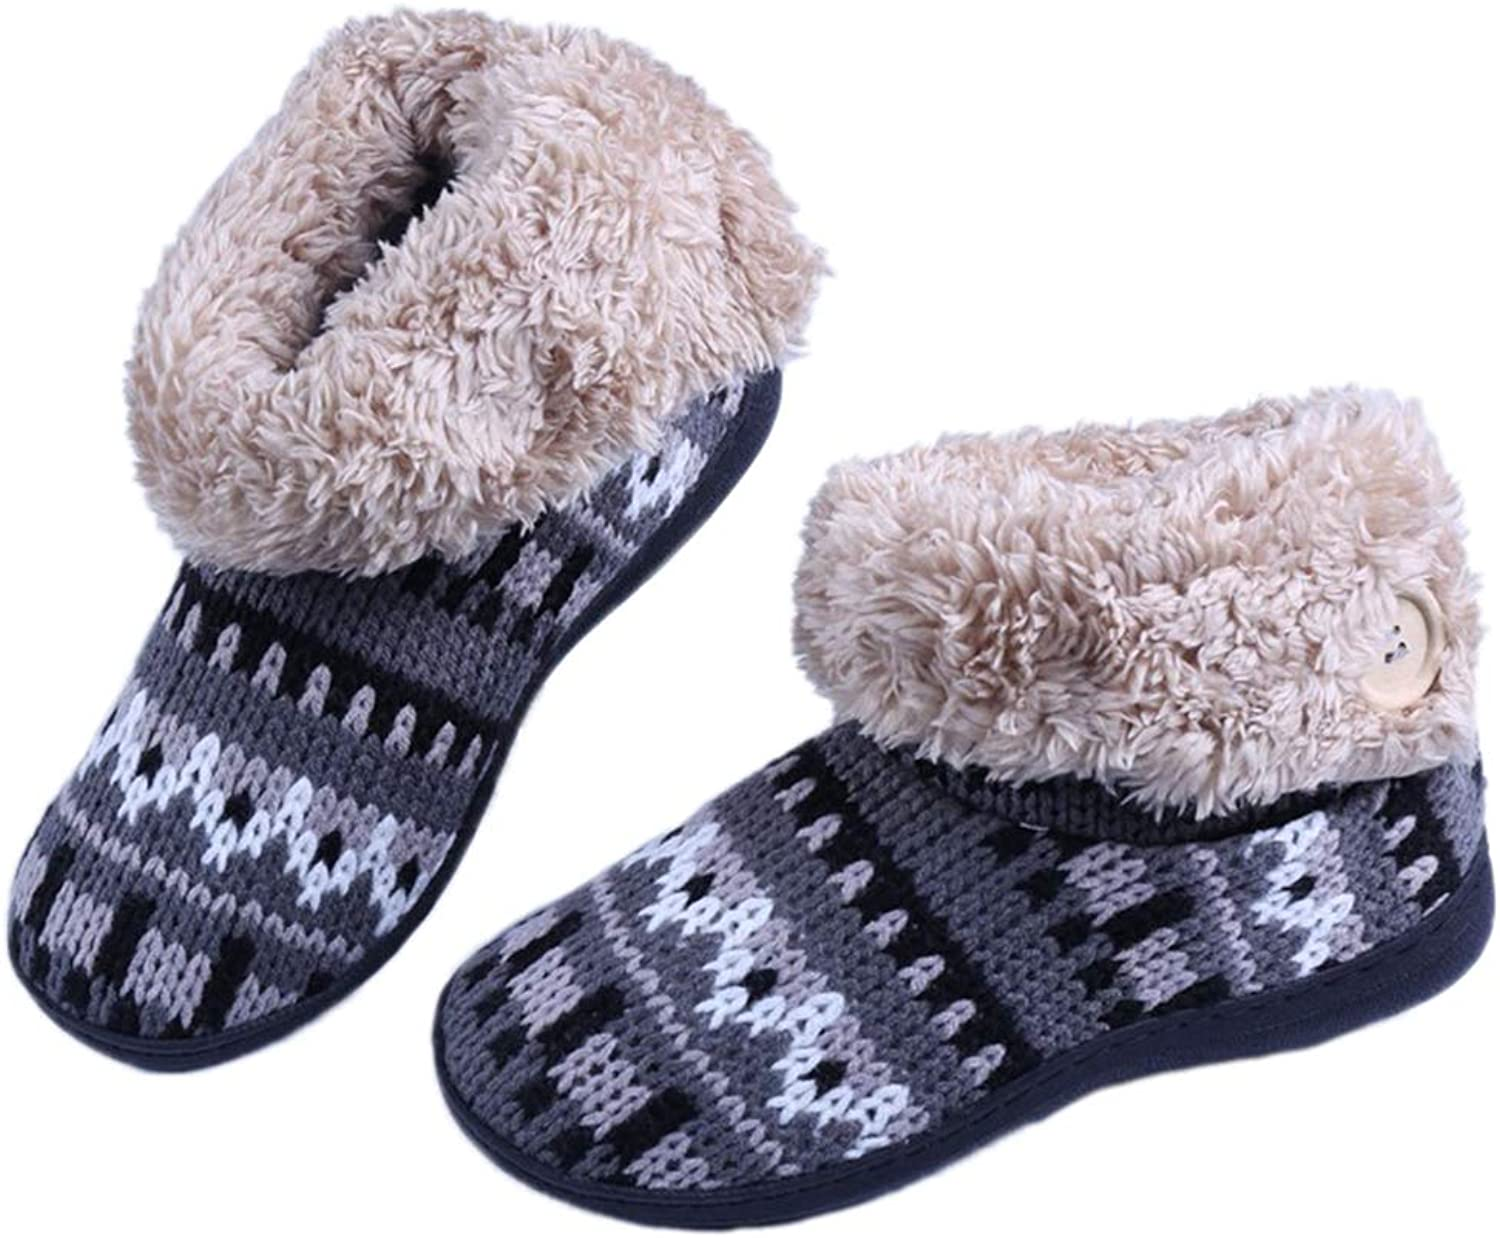 Home Winter Slippers Women Men Unisex Non-Slip Fabric Thick Plush Warm Stripe Indoor Boots shoes